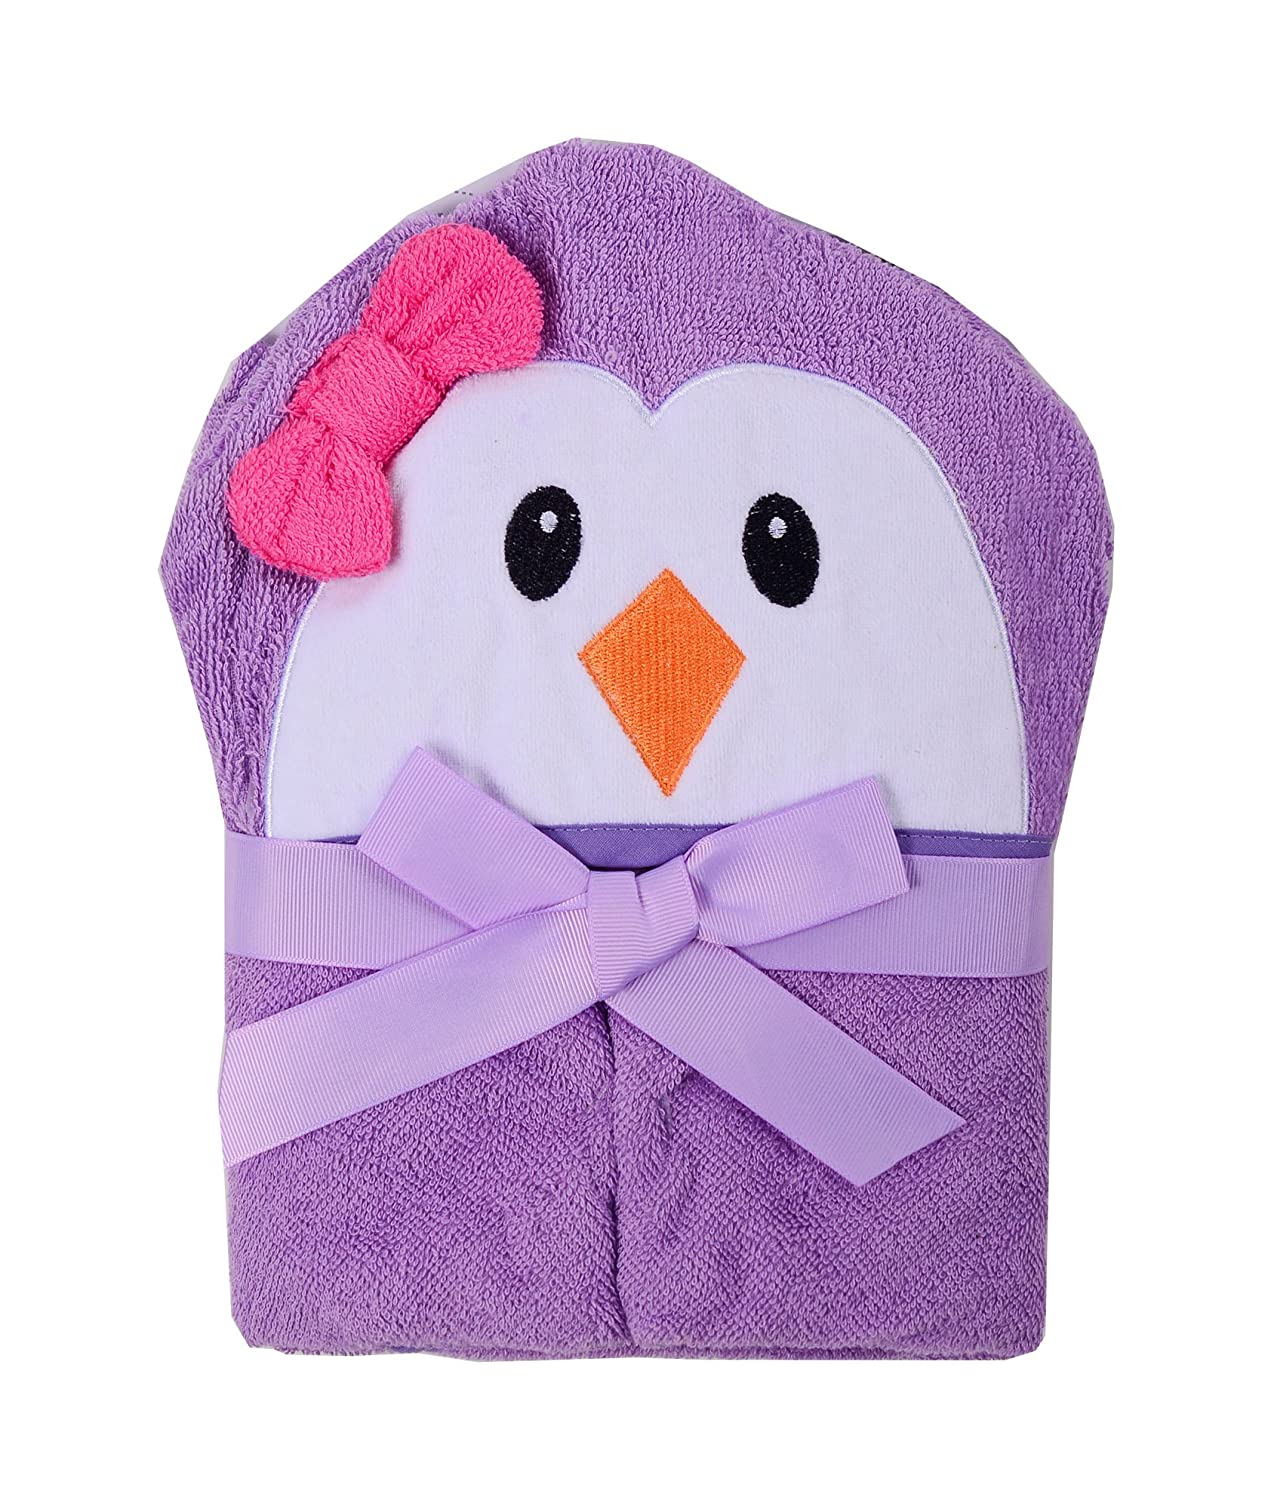 Baby Hooded Towel Bath Towel with Cute 3D Animal Hood